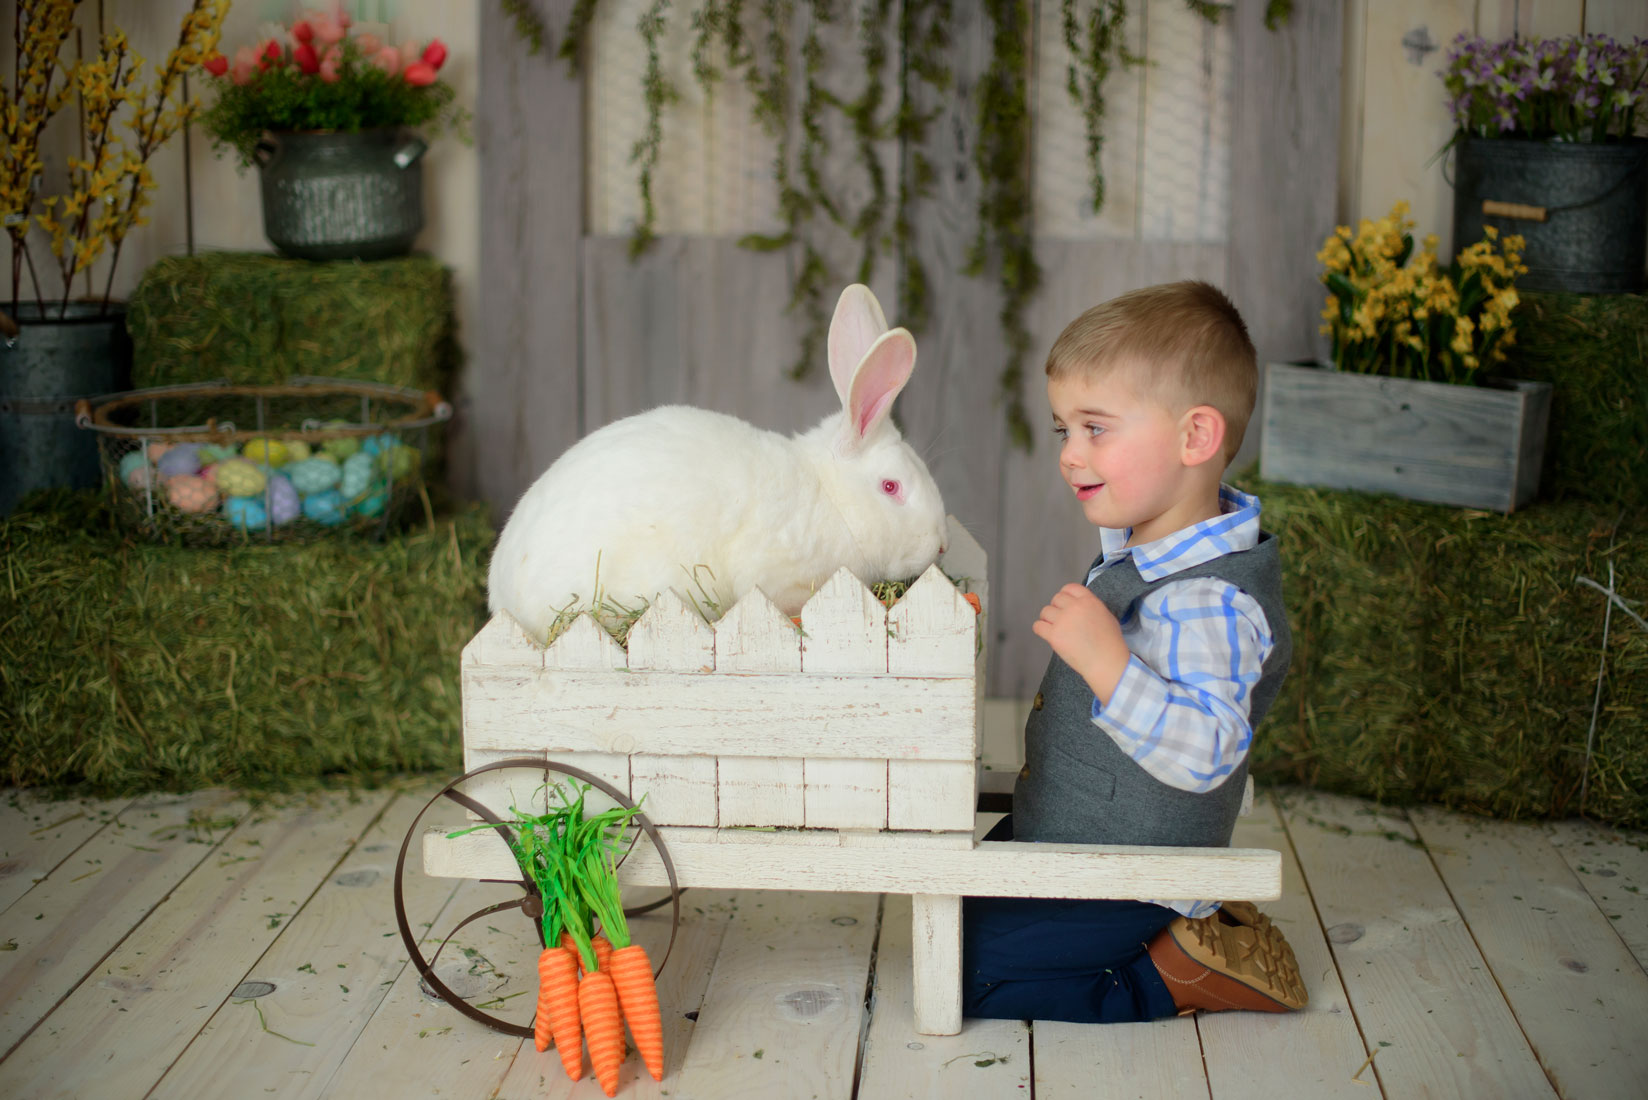 Easter mini session for babies and kids with a real bunny in Roseville, Rocklin, Lincoln, Sacramento area